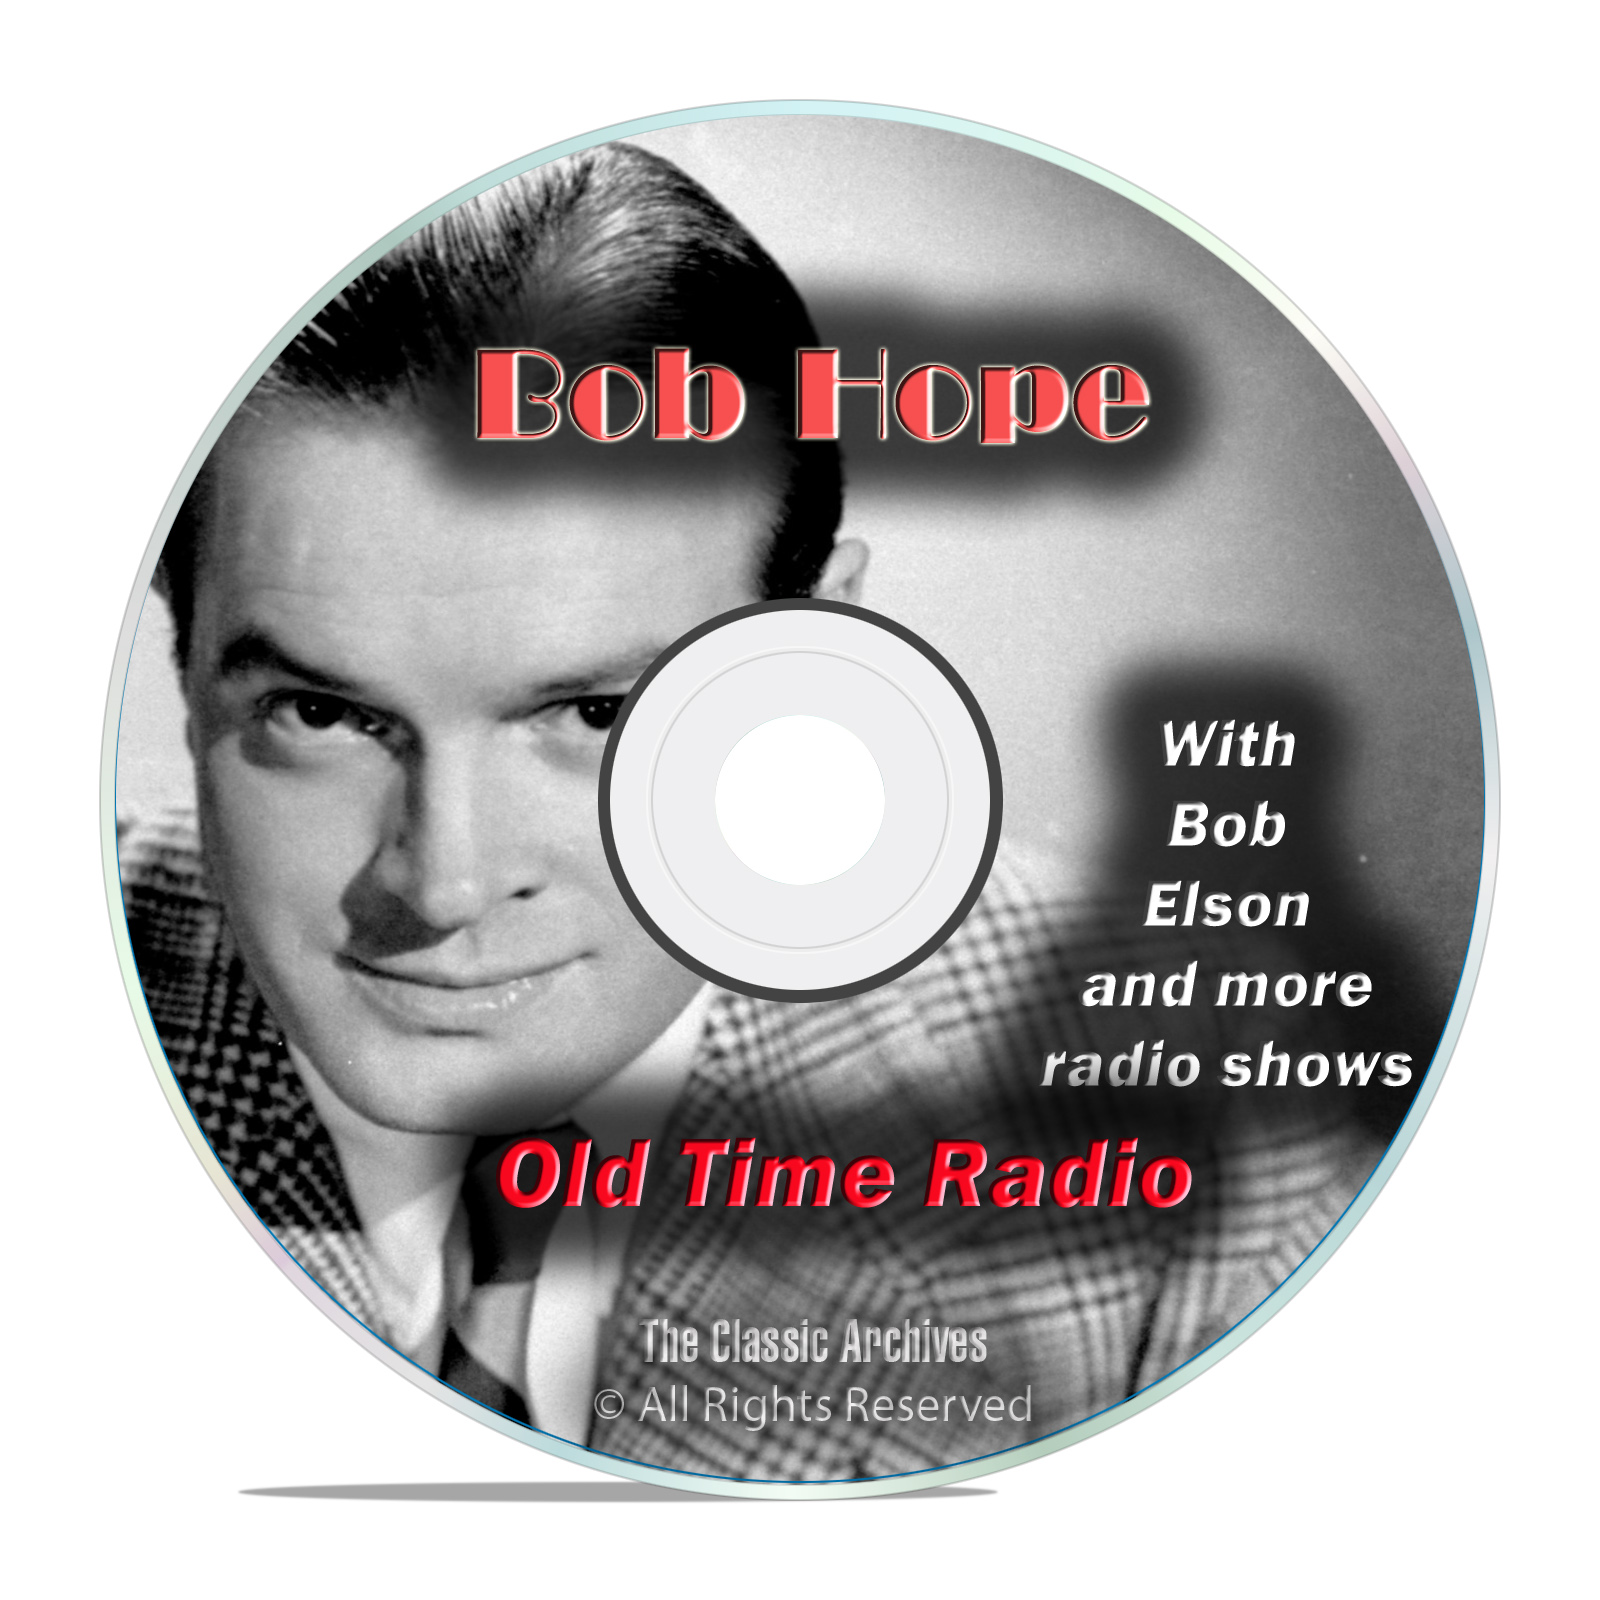 Bob Hope, Comedy, Music and Variety Shows, 849 Old Time Radio Shows, OTR